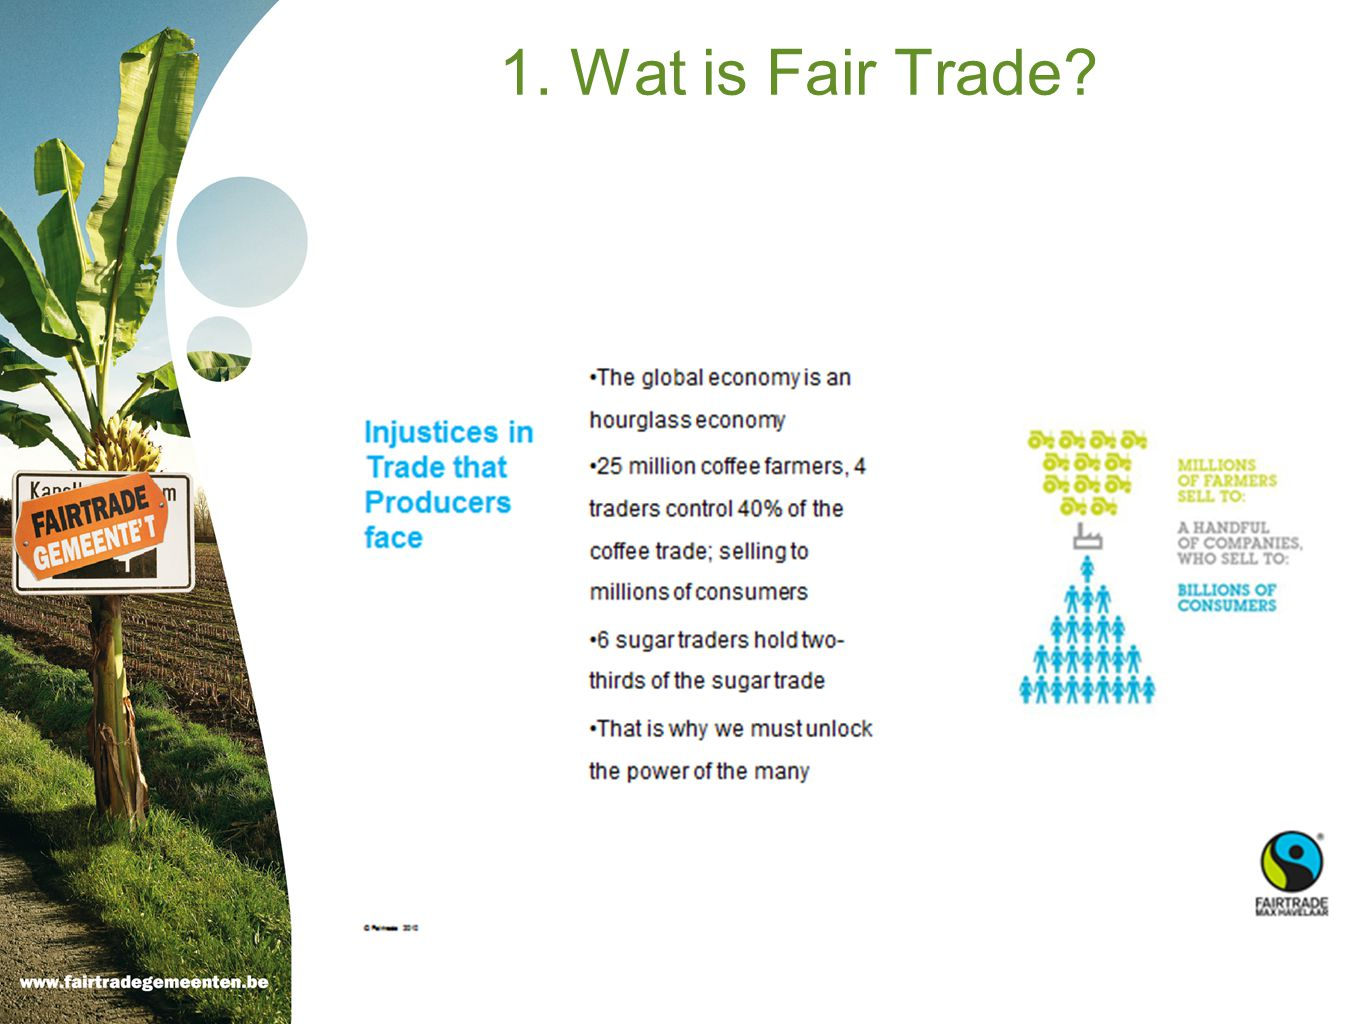 1. Wat is Fair Trade?